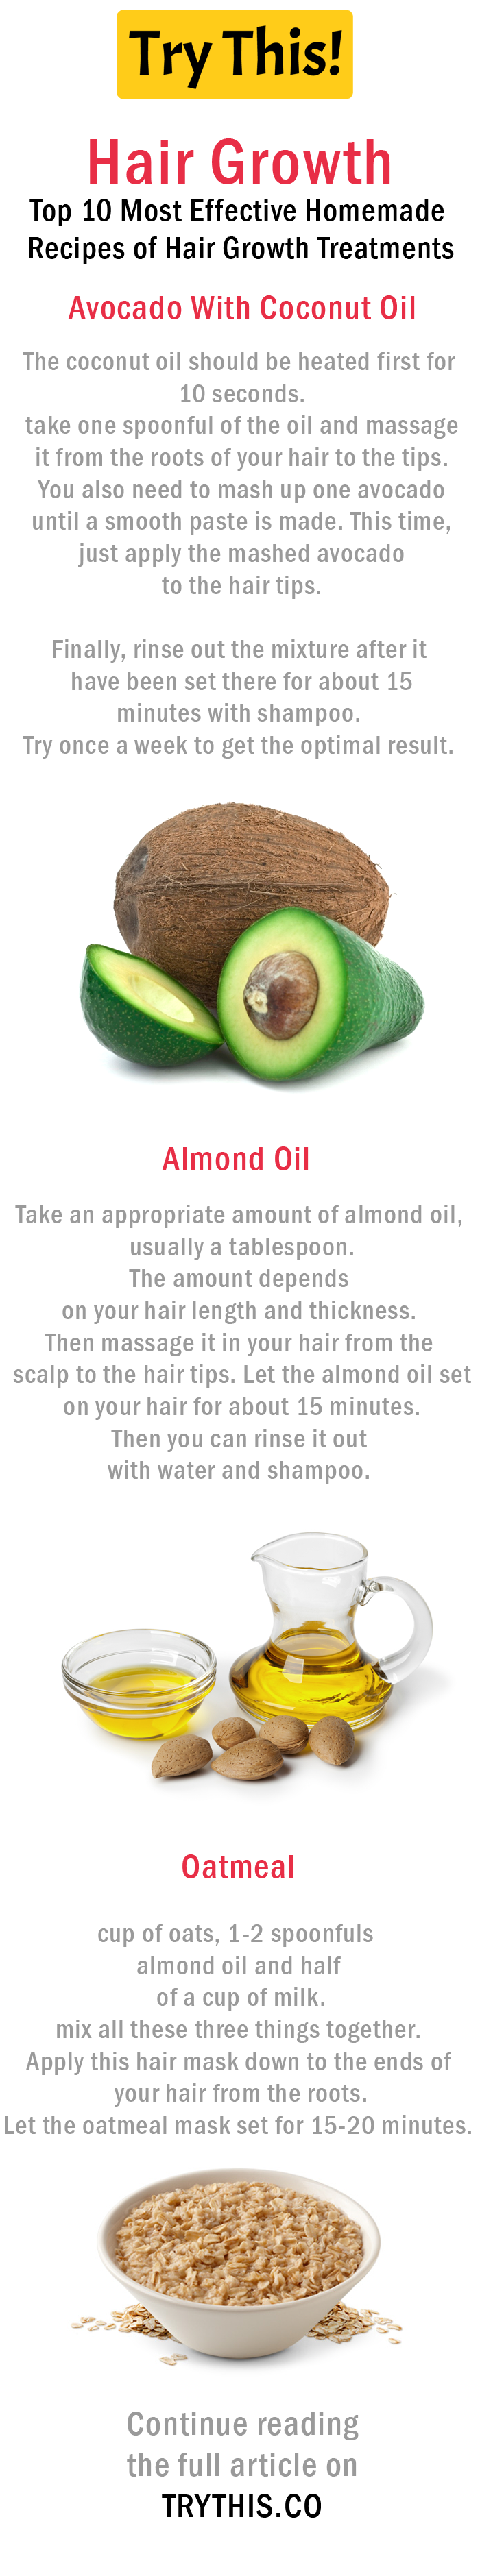 hair growth: help your hair regrowth with these homemade